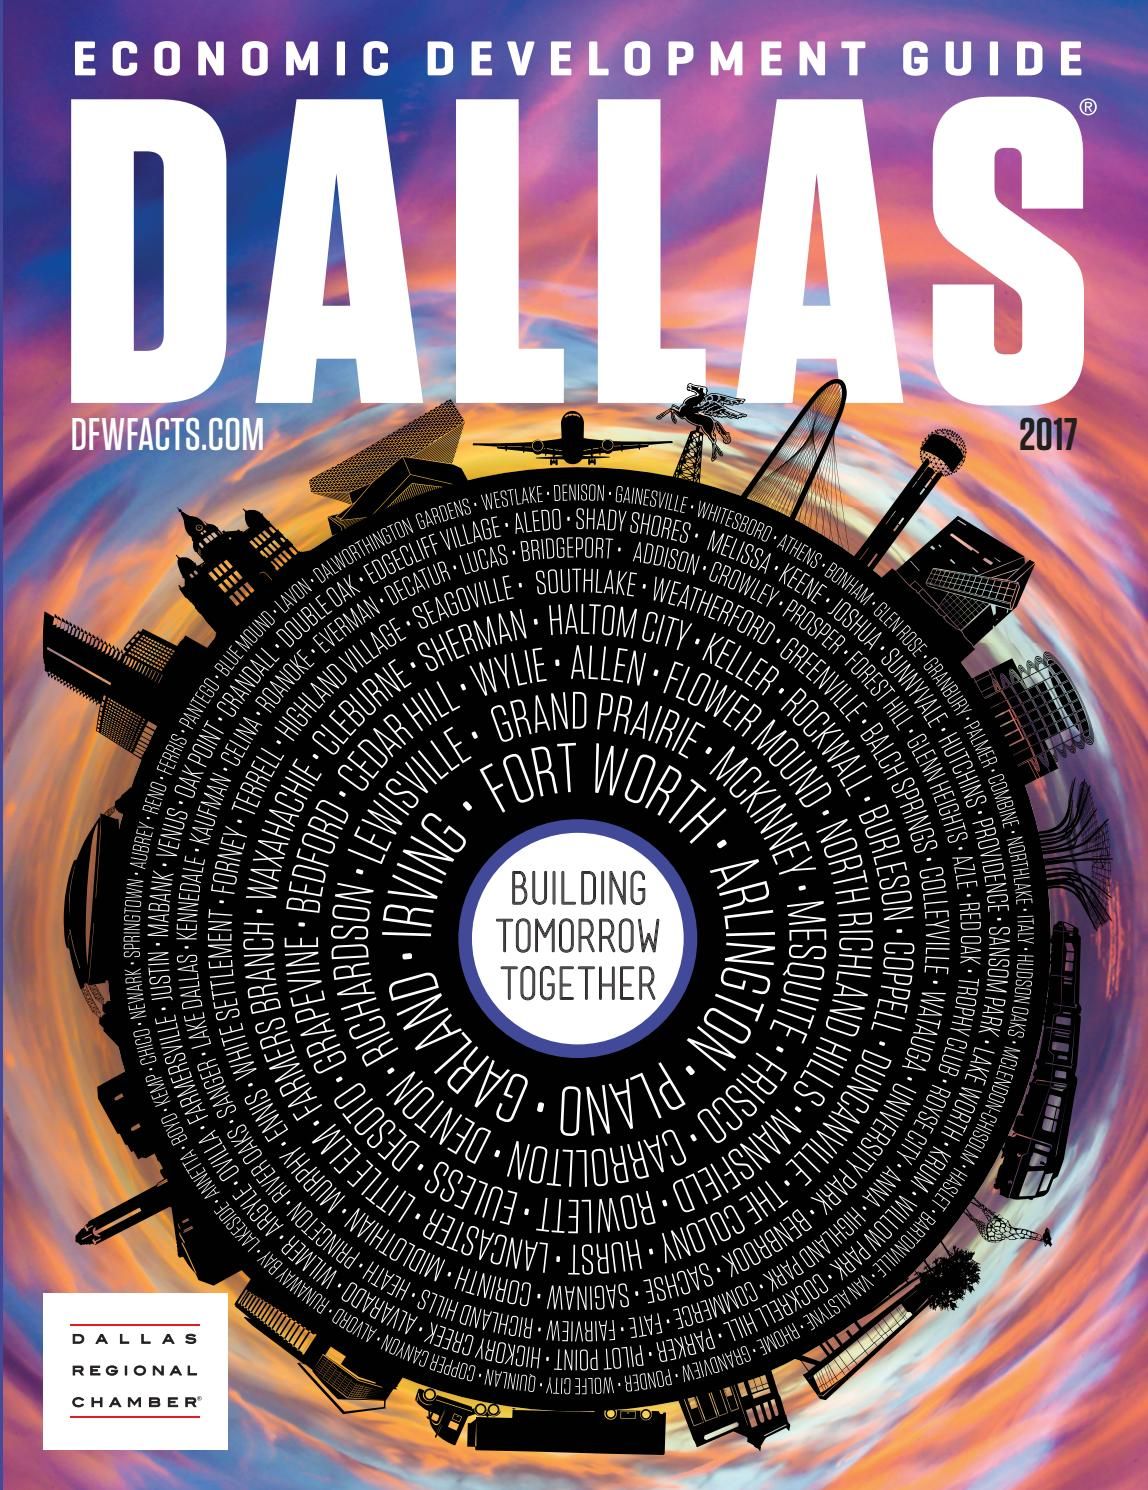 Dallas Economic Development Guide - 2017 by Dallas Regional